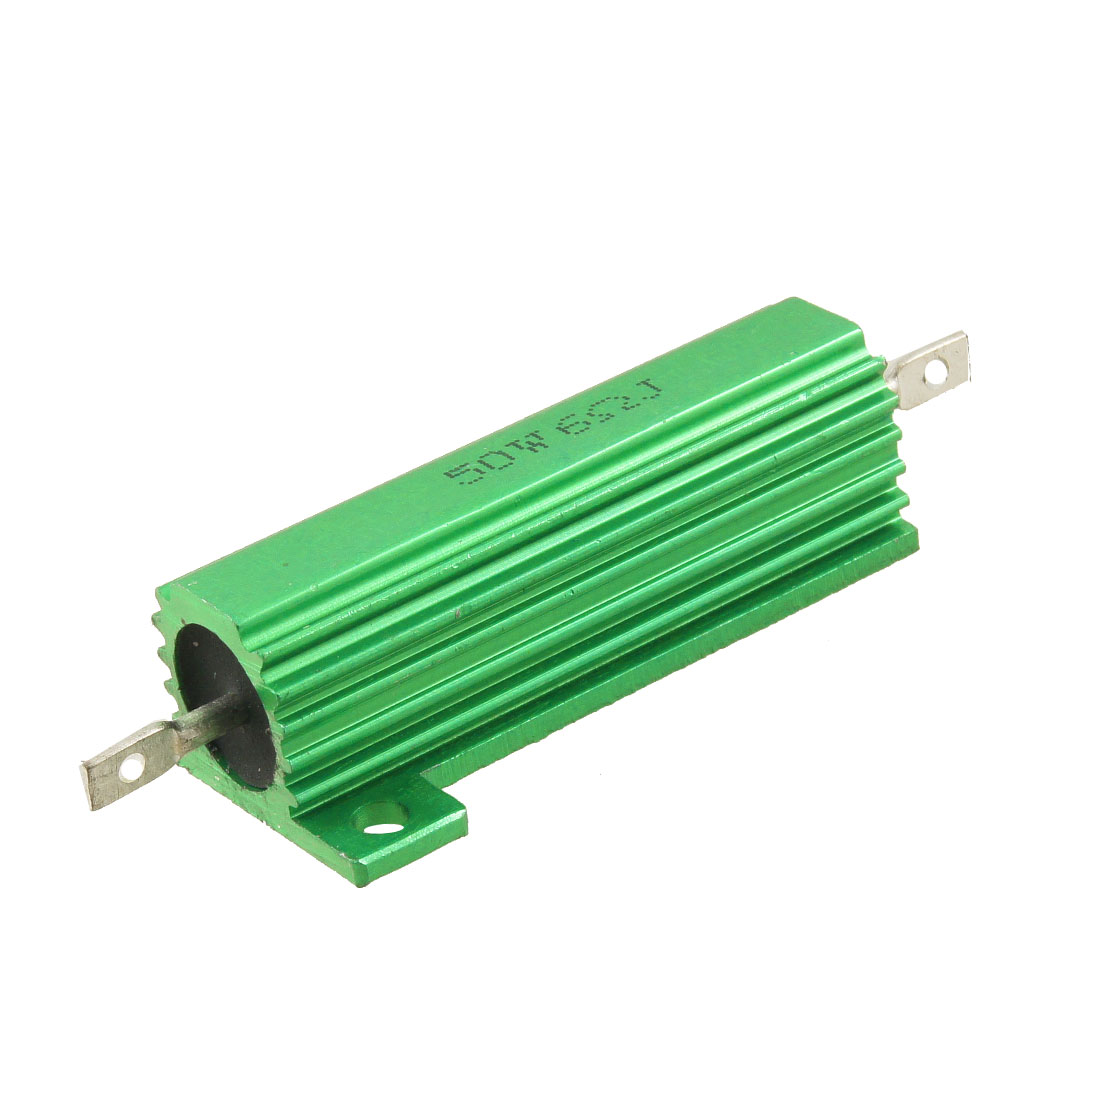 Green 50 Watt 6 Ohm 5% Aluminum Shell Case Wire Wound Resistor